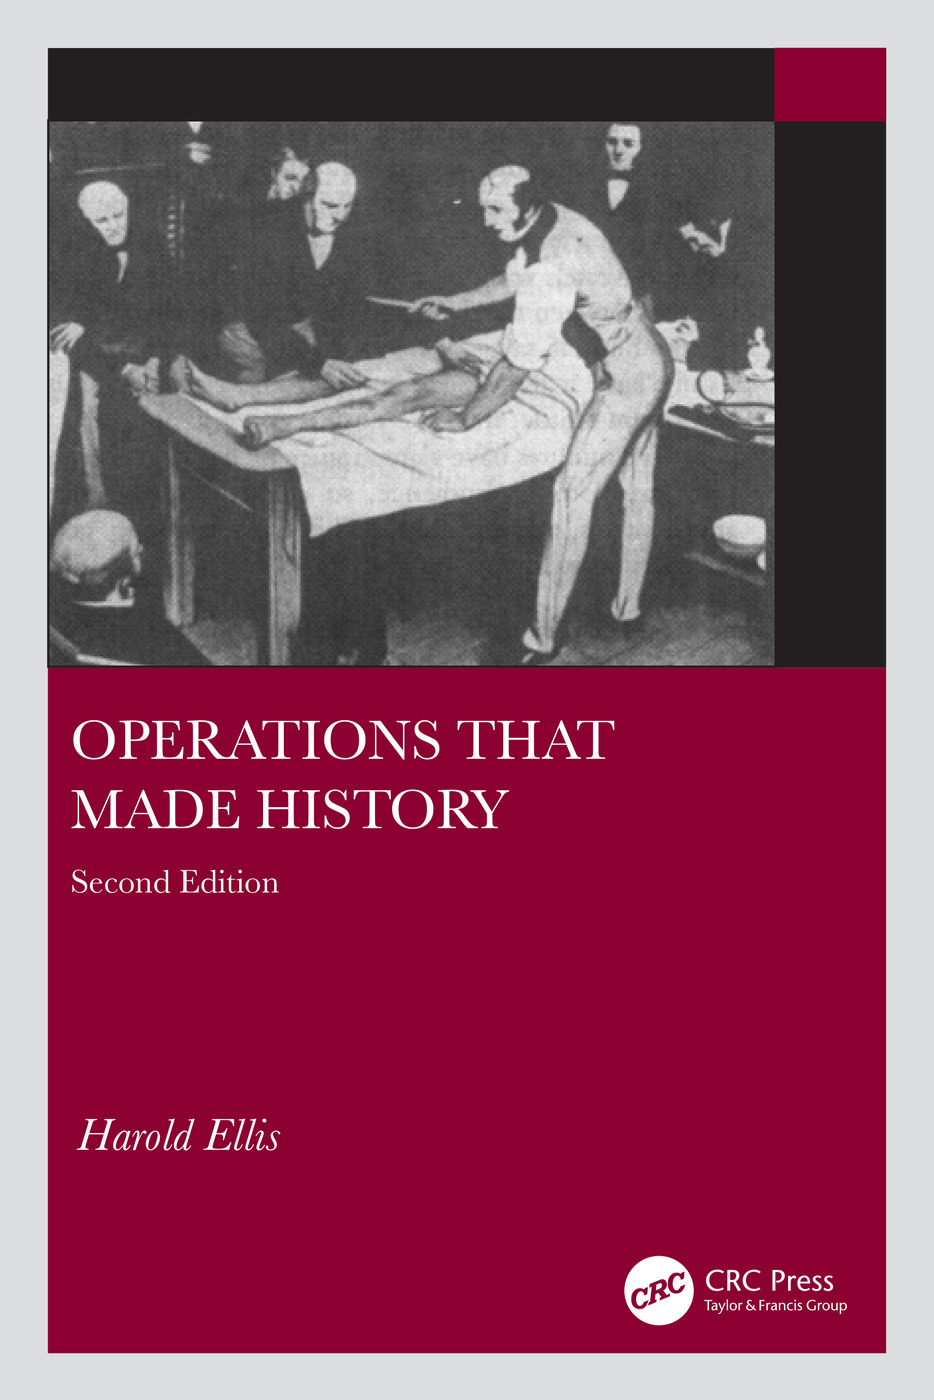 Operations That Made History 2e 2nd Edition Harold Ellis Routle